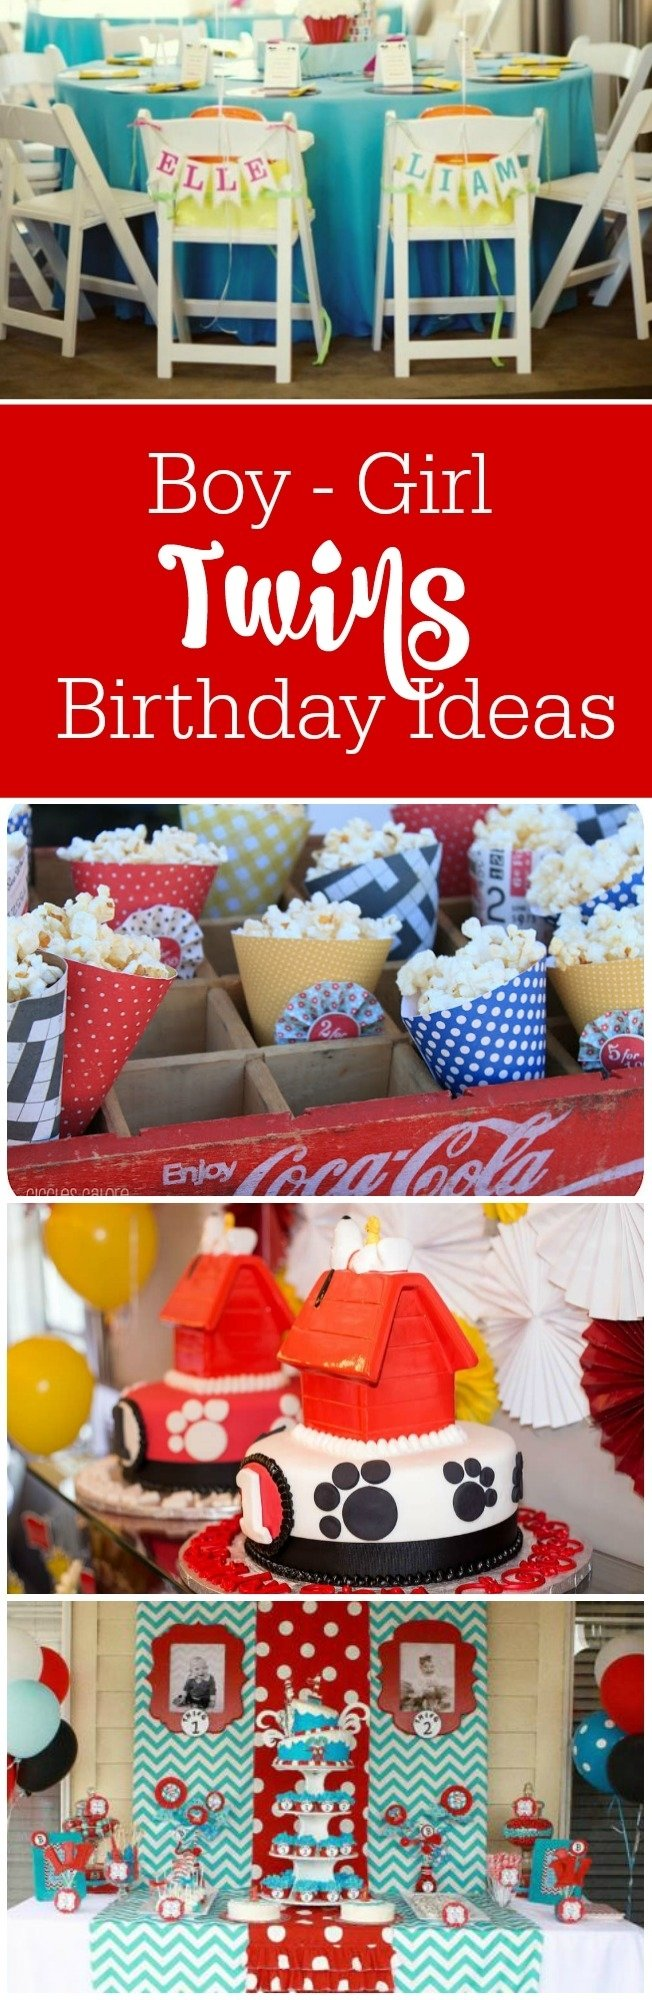 10 Lovely Boy And Girl Birthday Party Ideas twins birthday party ideas for boy girl twins 3